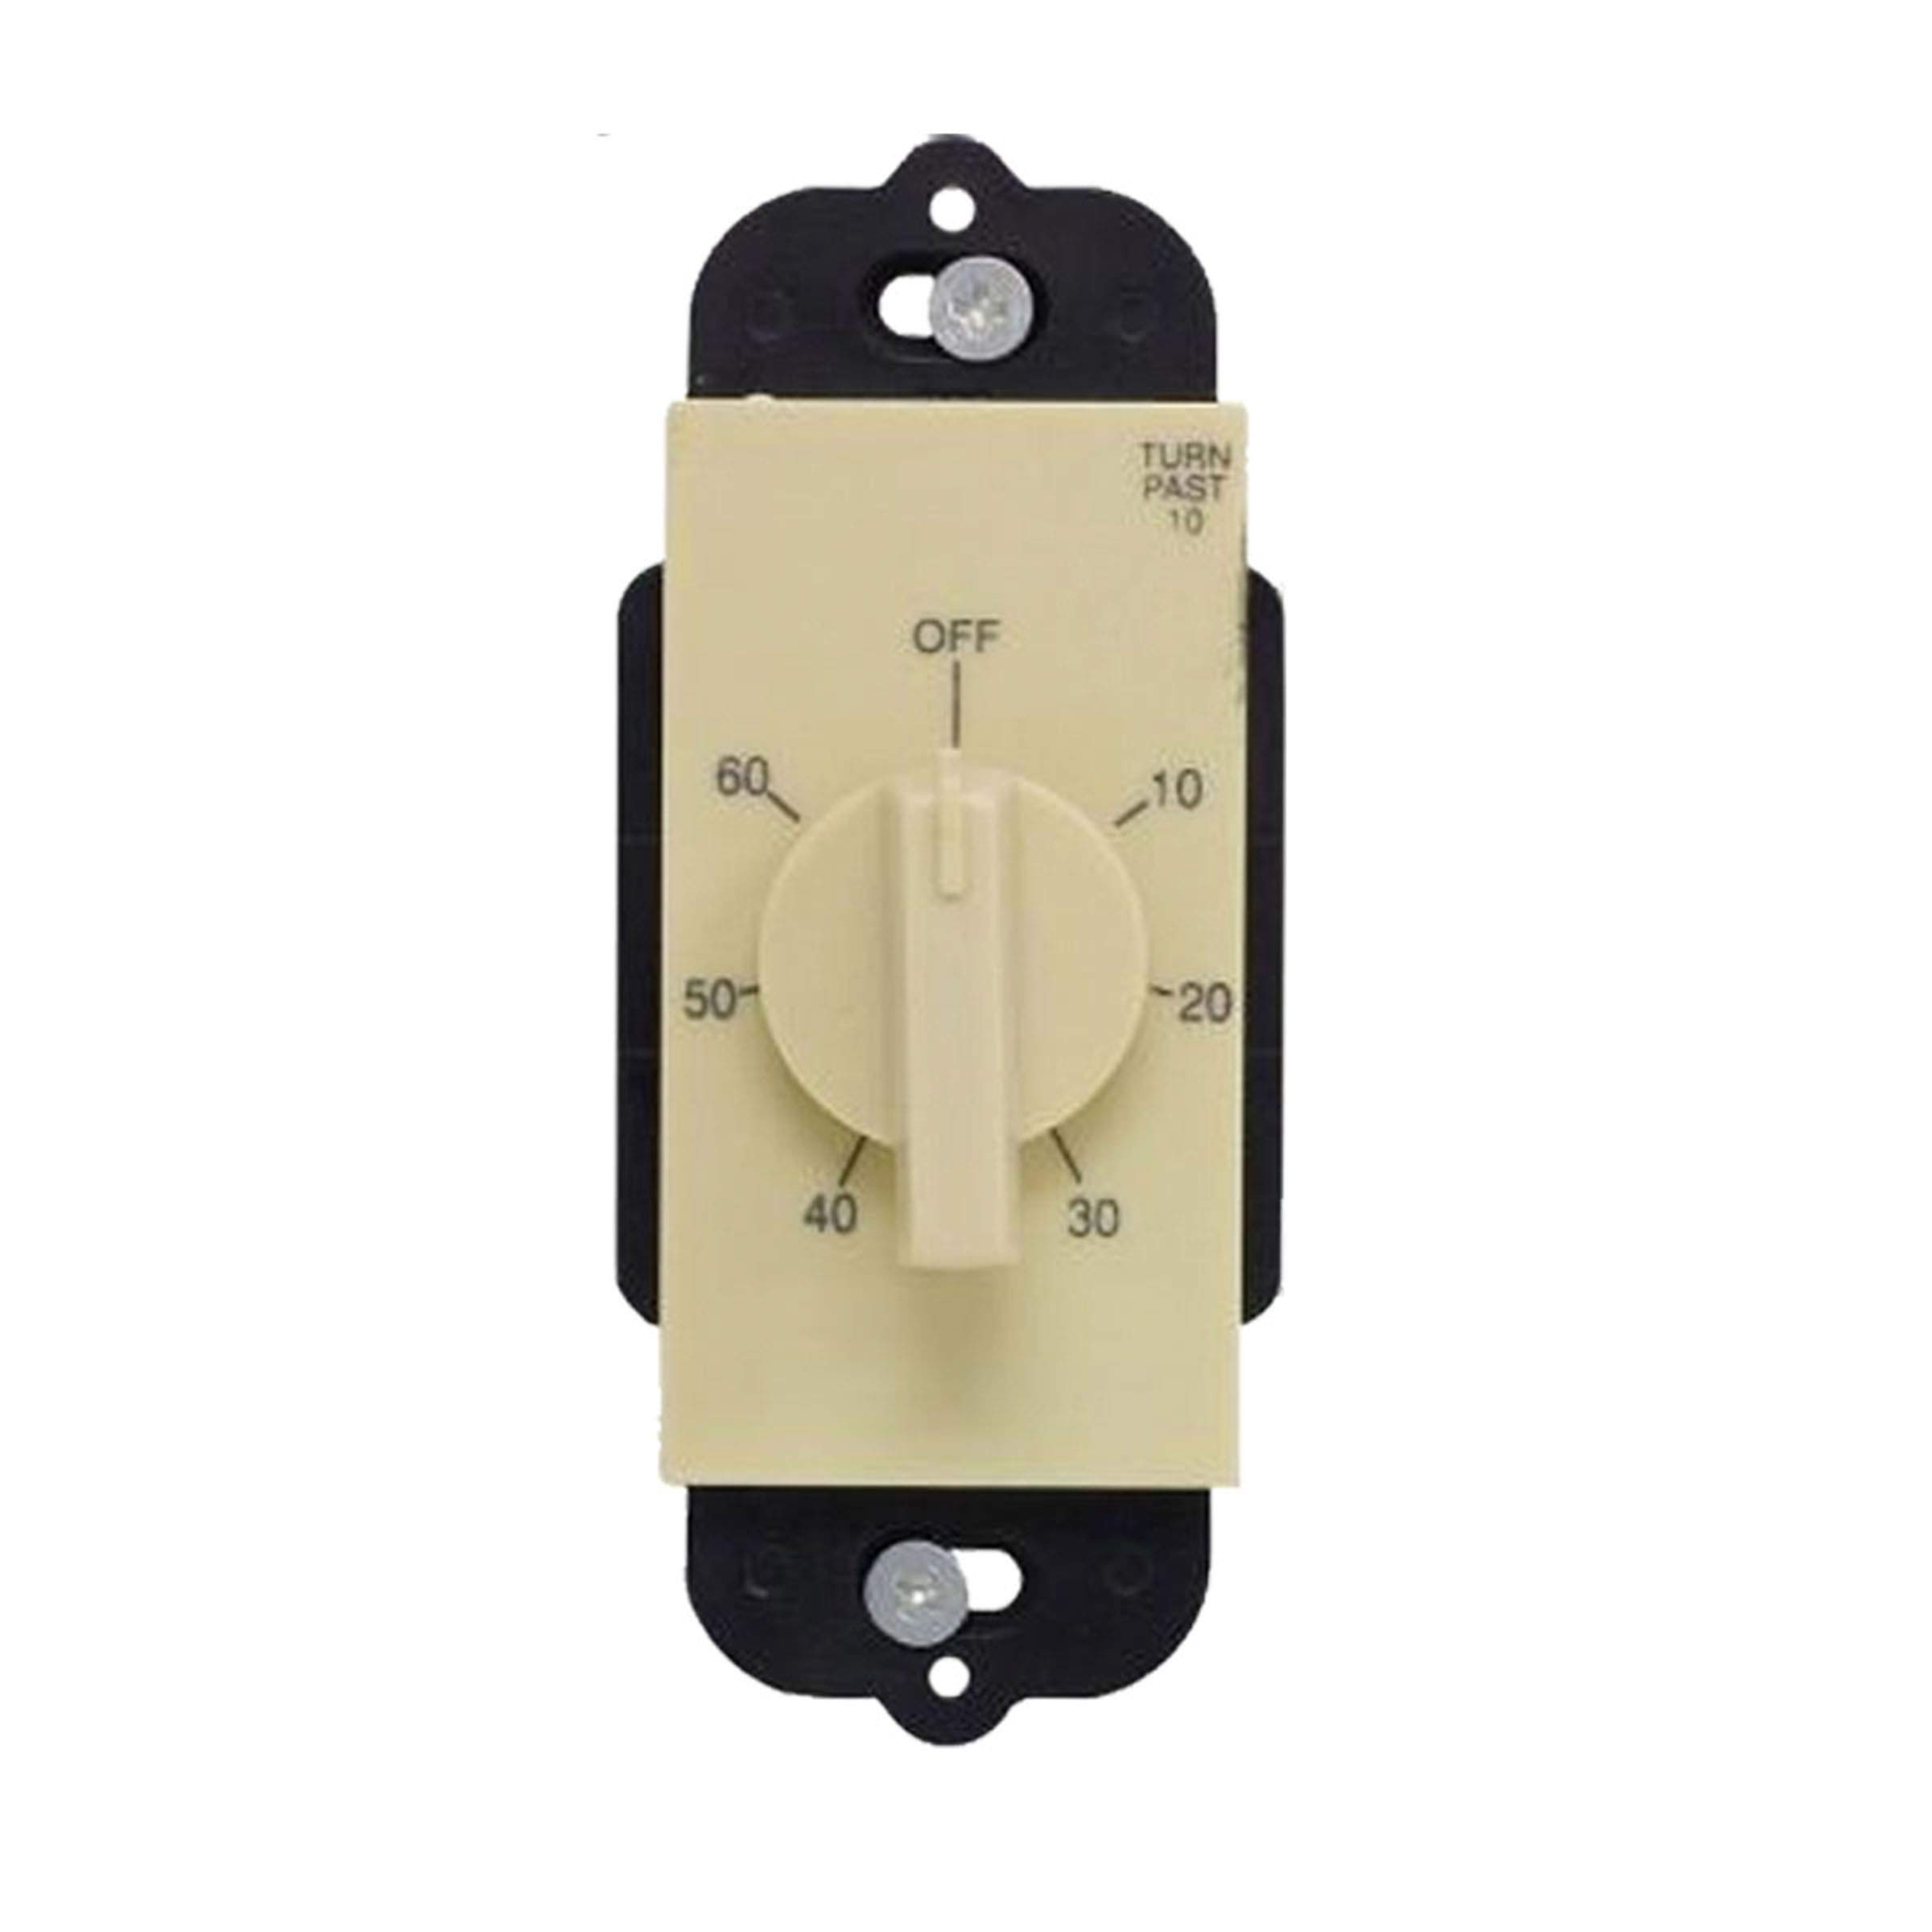 mistcooling Auto Shut Off Wound Mist Timer by mistcooling